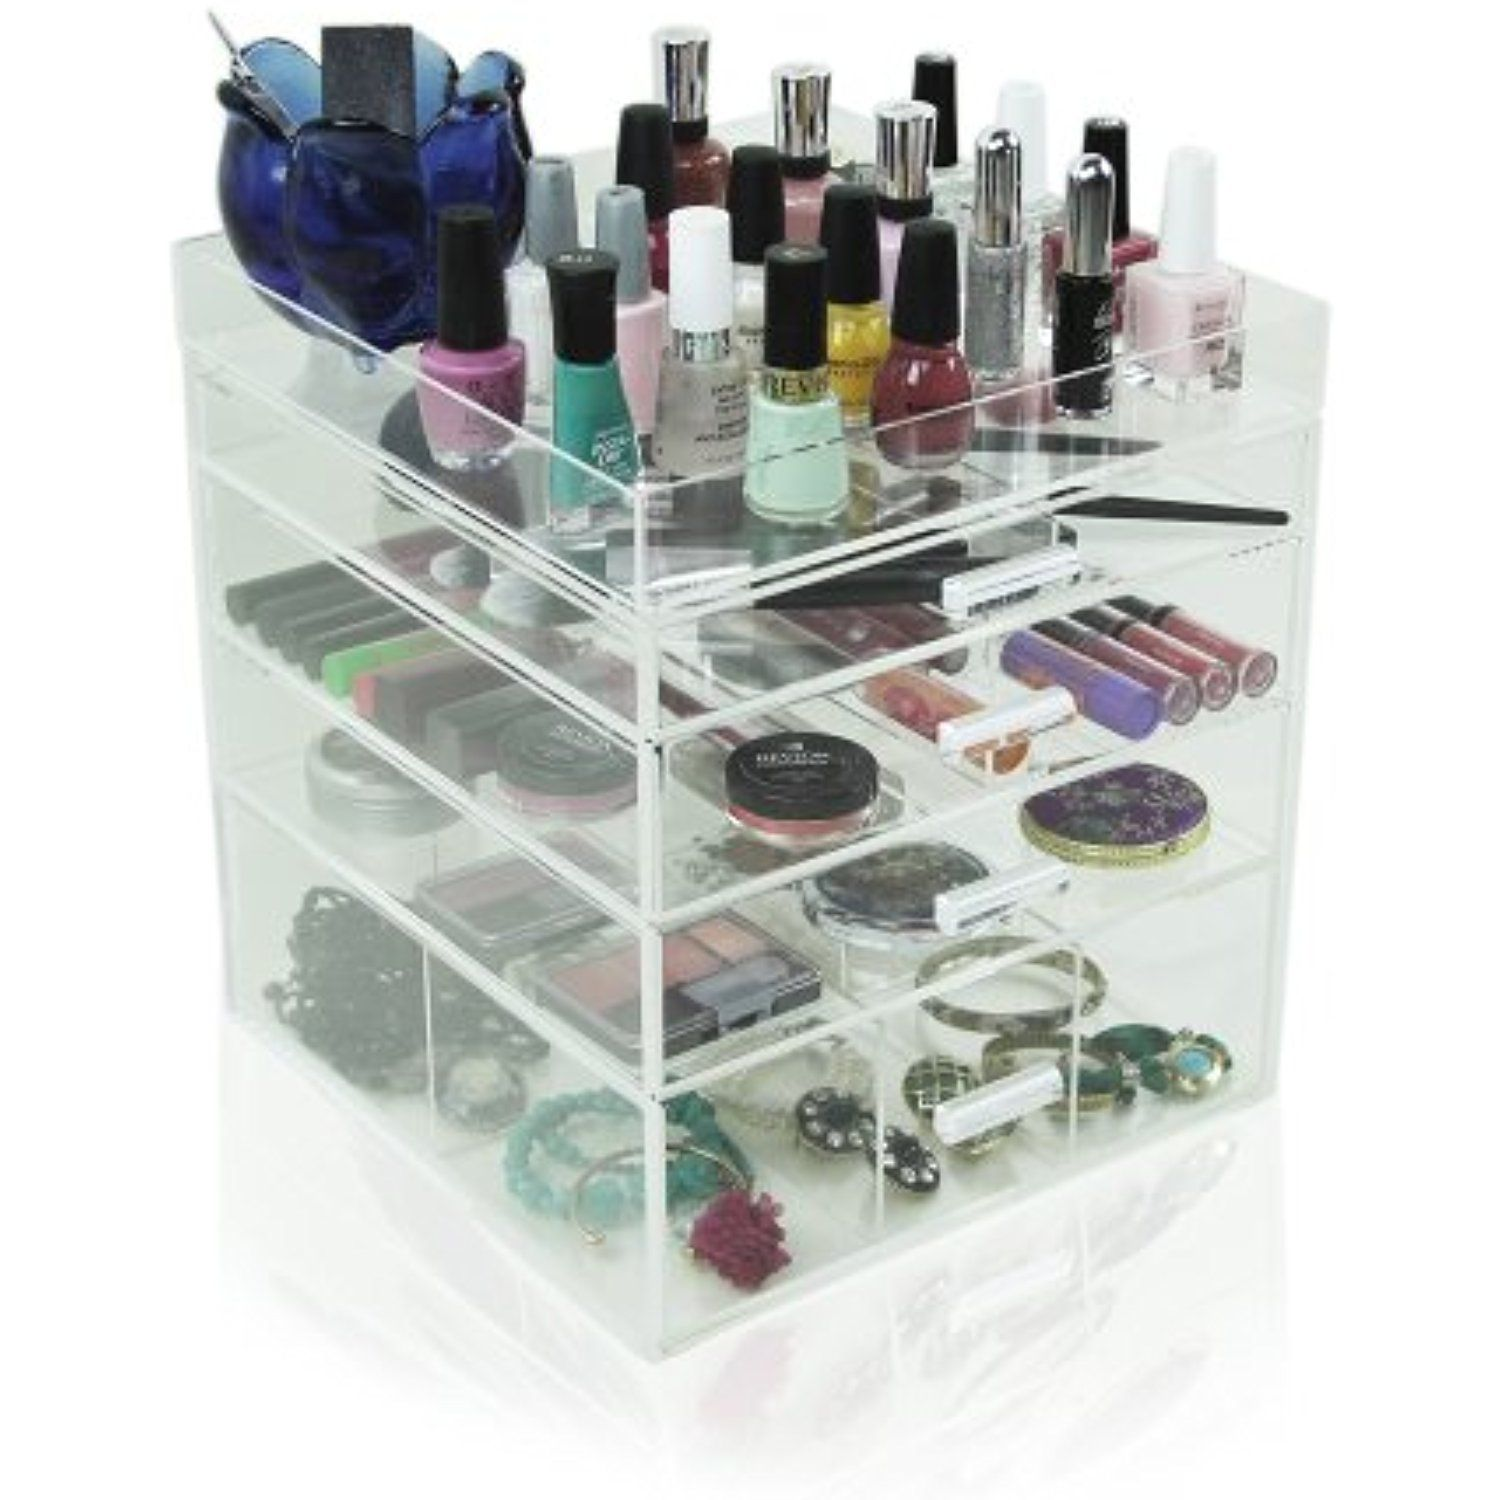 Houseables Acrylic Makeup Organizer 4 Drawers 11x11x1175 Clear